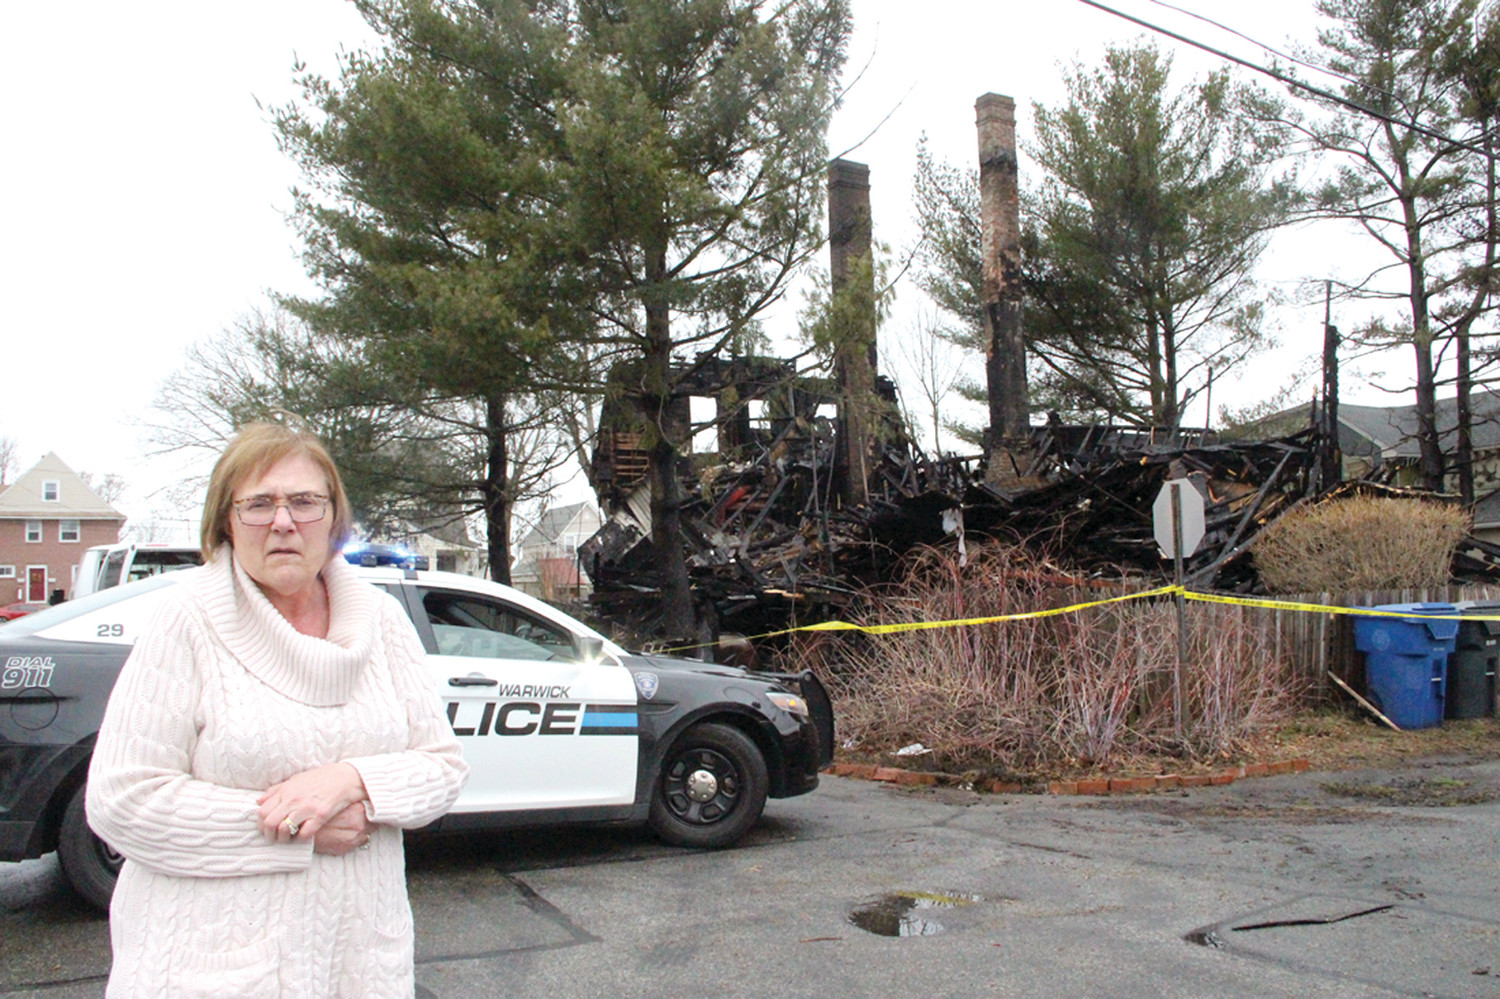 A NEIGHBOR'S HOME: Karen Oliver Legg (pictured) and her husband, Jim, welcomed Diana Turgeon and Michael Spooner into their home early Wednesday morning. A fast moving fire reduced the Turgeon/Spooner home at 19 Royal Avenue to rubble late Tuesday night.